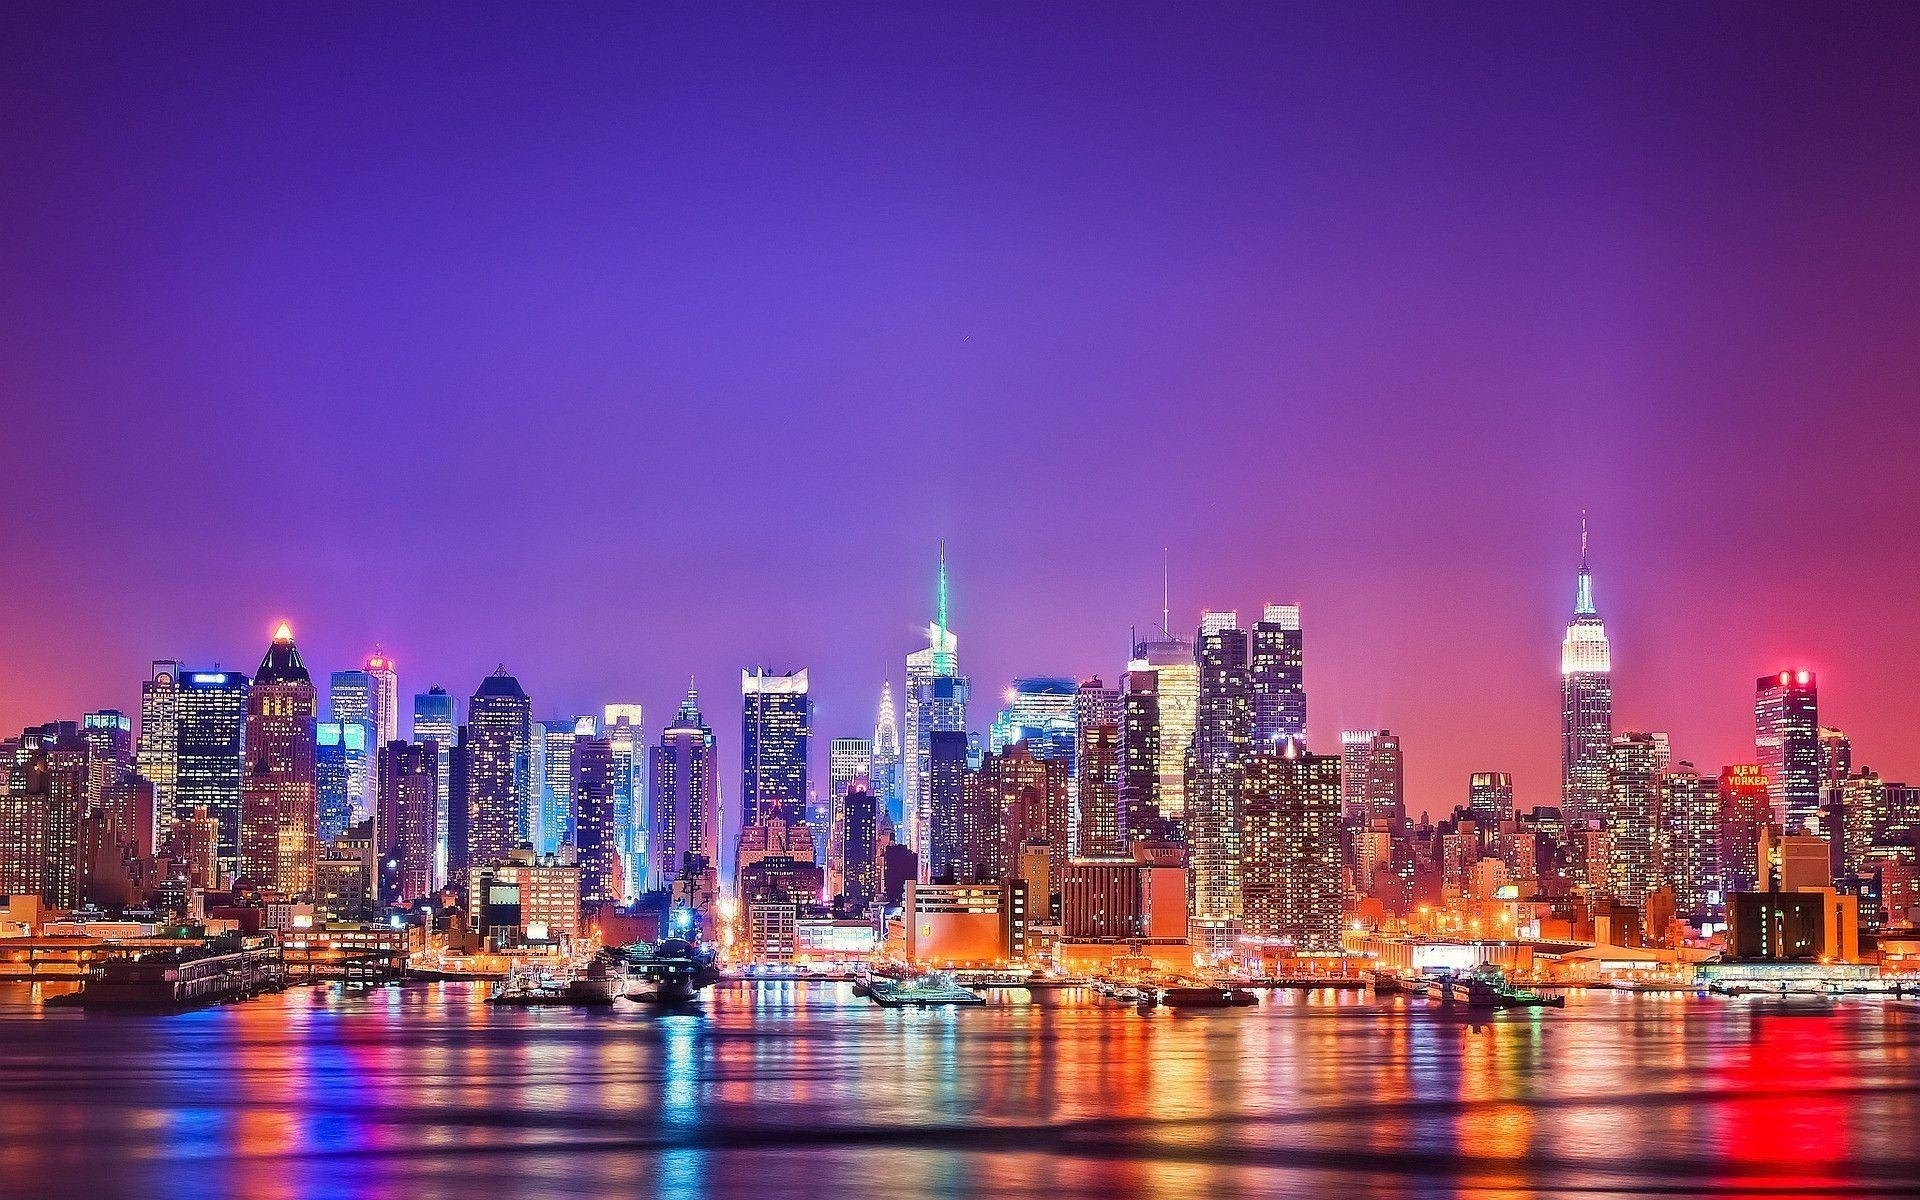 new york city wallpapers widescreen - wallpaper cave